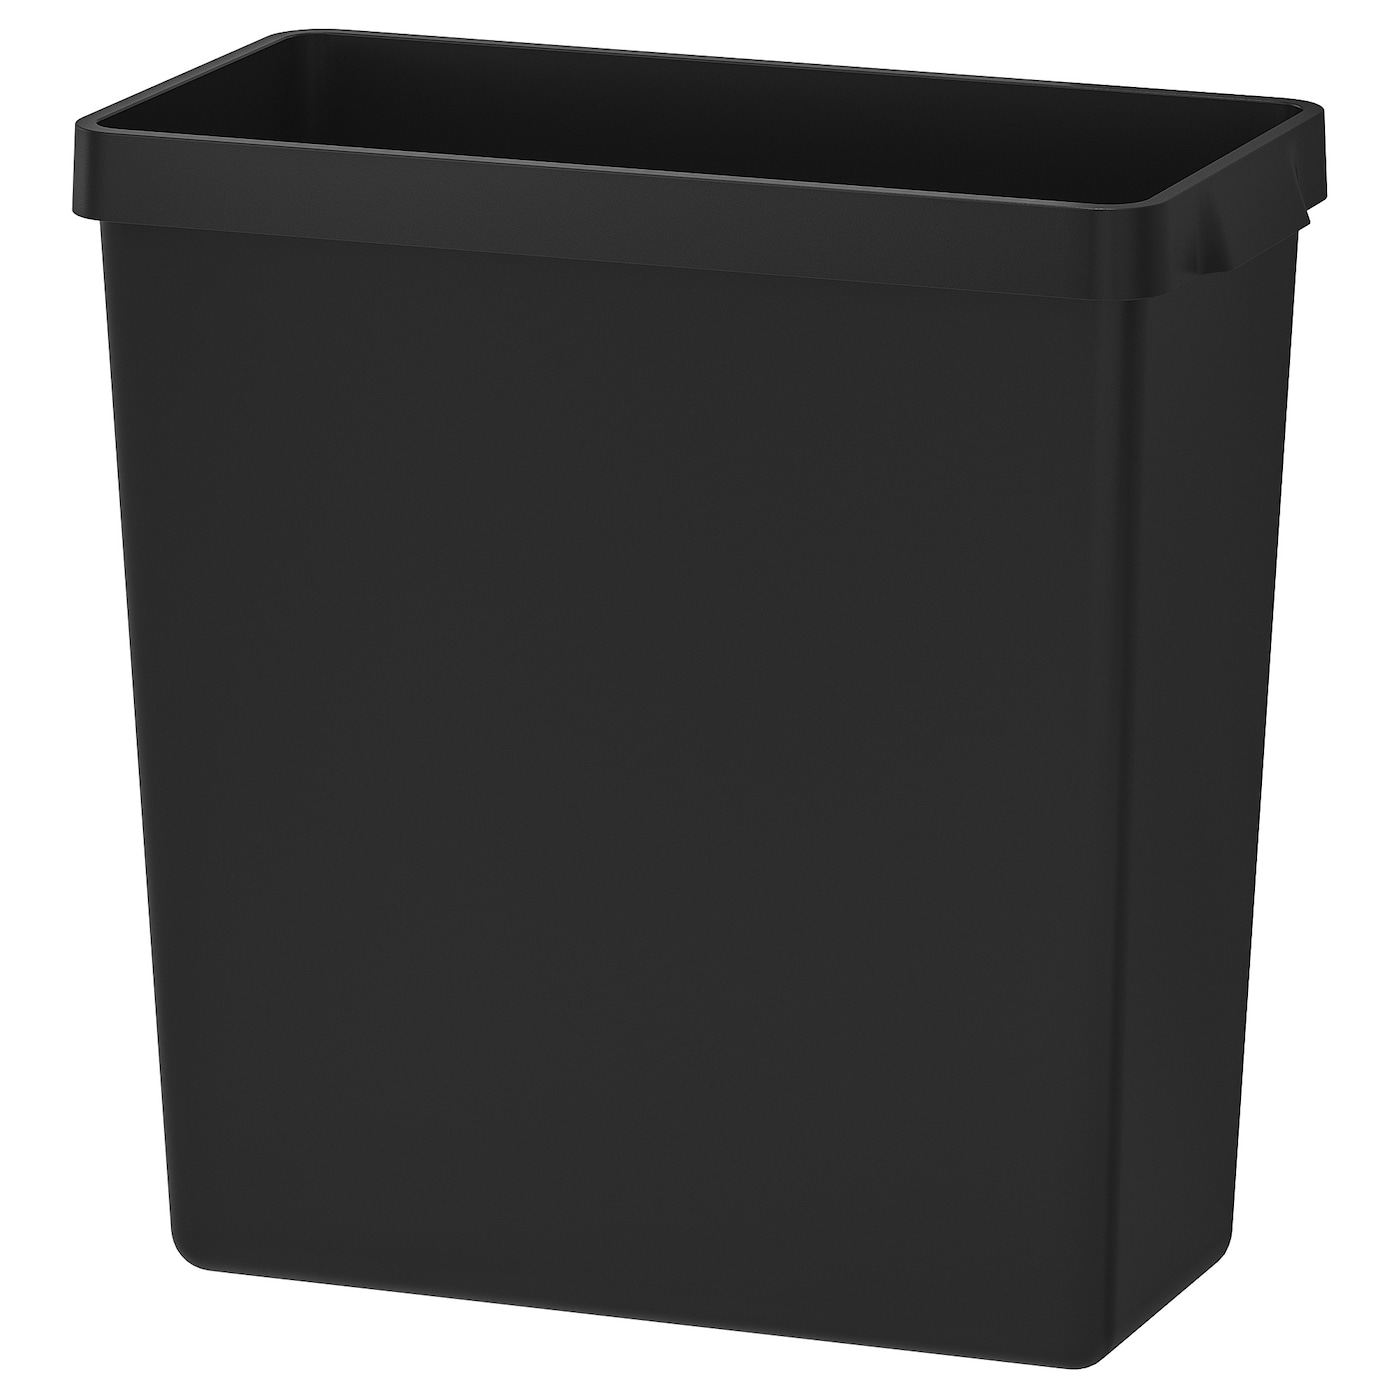 IKEA VARIERA waste sorting bin Place the bin under the sink, in a drawer or in a cabinet.